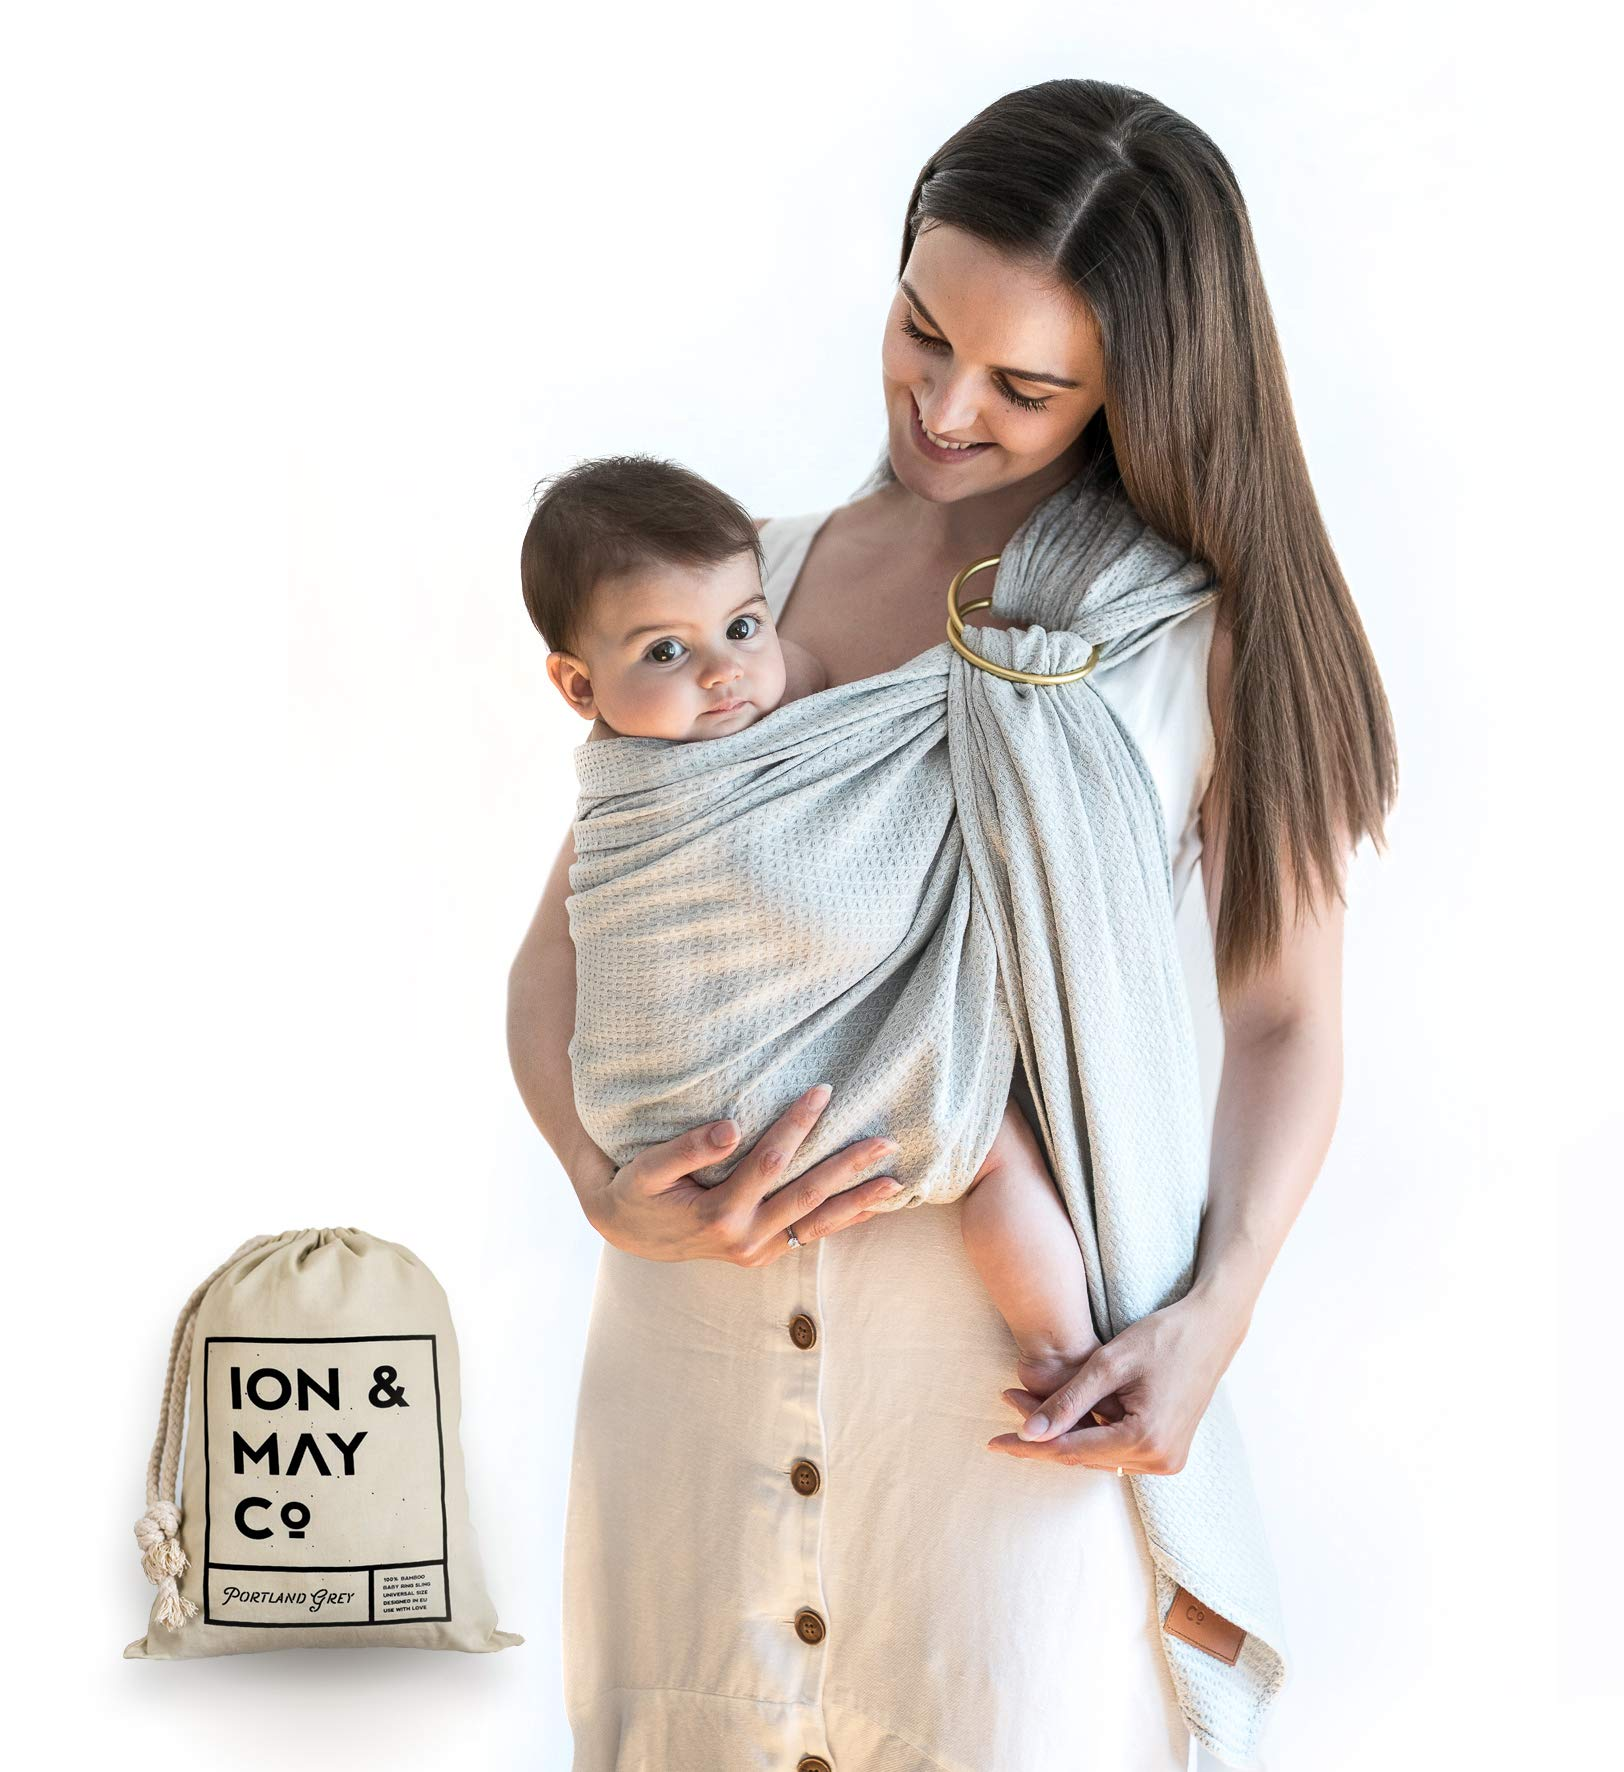 Baby Wrap Carrier Ring Sling by ION & MAY, Natural Pure Bamboo in Portland Grey, Soft and Breathable for Parents-On-The-Go, Neutral Shower Gift, Breastfeeding Cover, Stored in Pouch